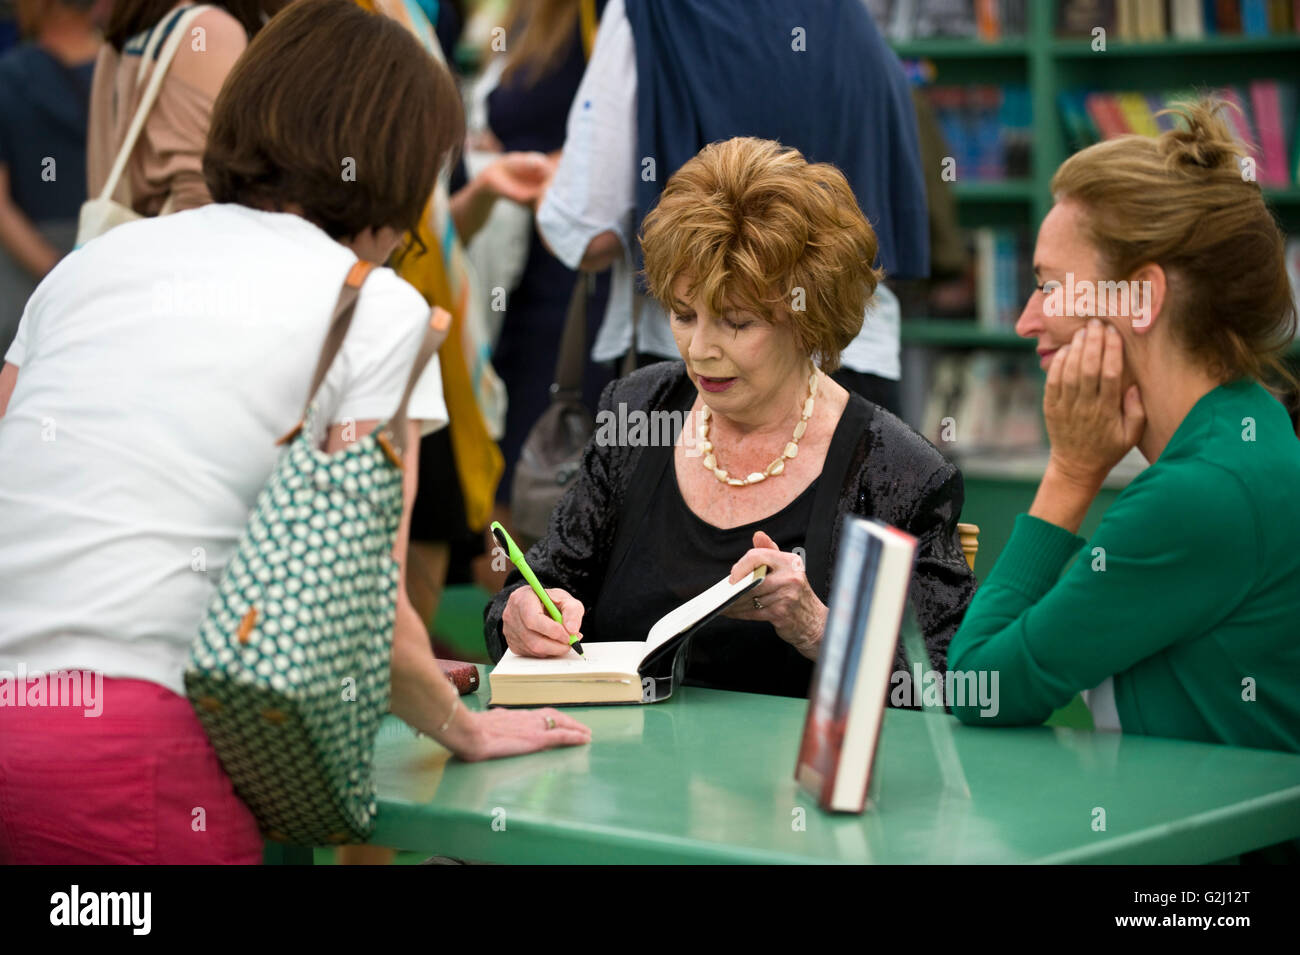 Edna O'Brien book signing in the bookshop at Hay Festival 2016 - Stock Image